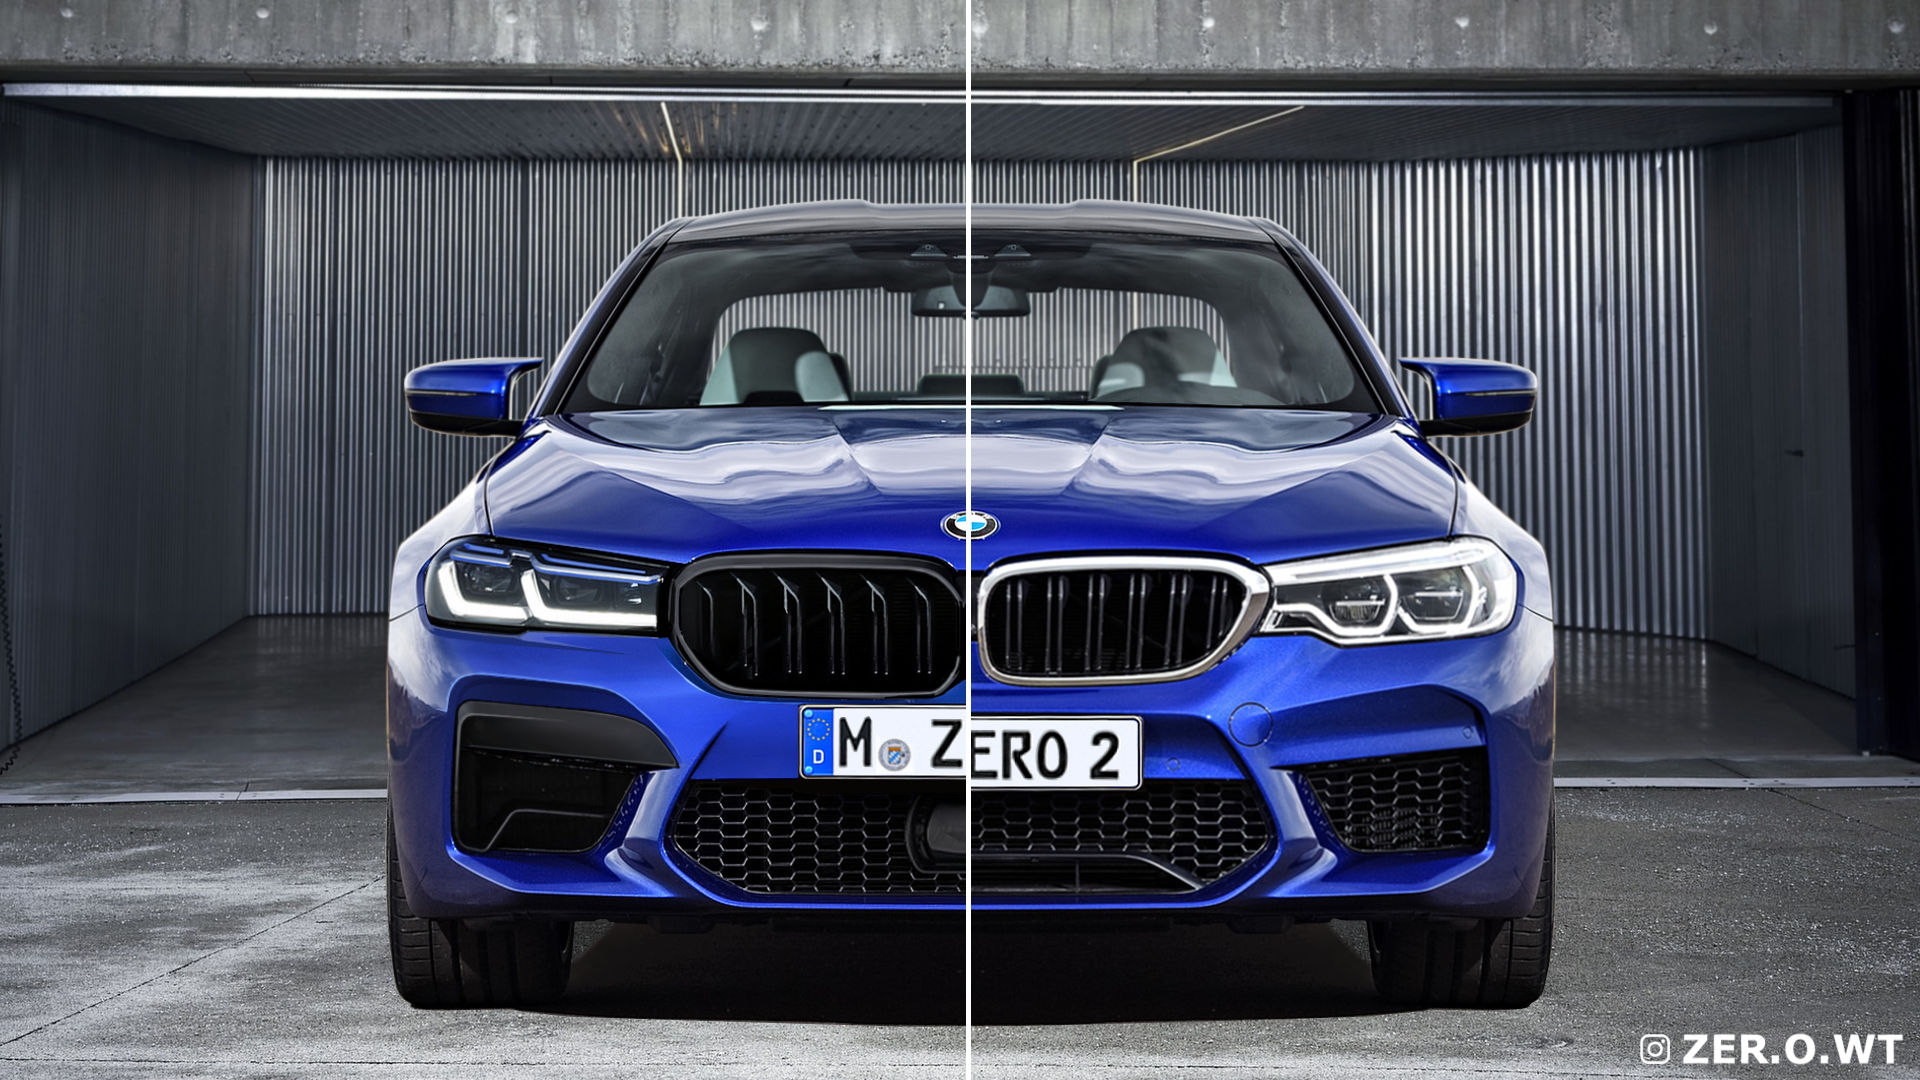 This Is What The Facelifted 2021 Bmw M5 Should Look Like Carscoops